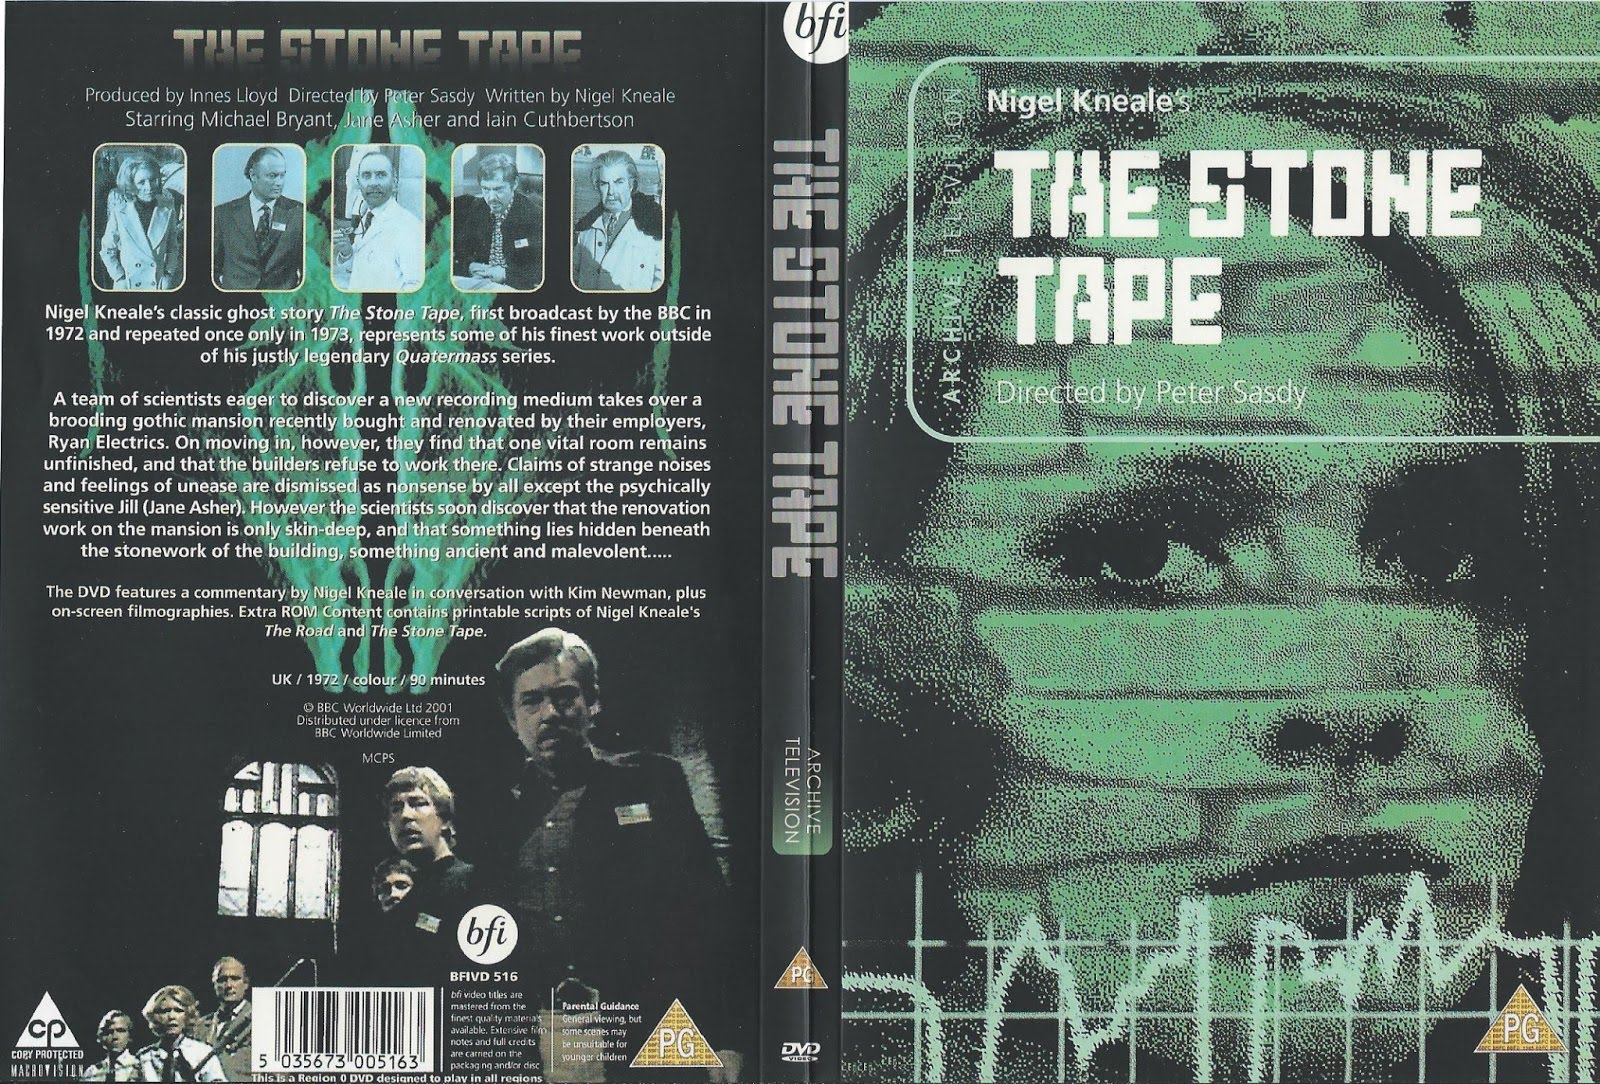 The Stone Tape (1972) by NIGEL KNEALE & PETER SASDY